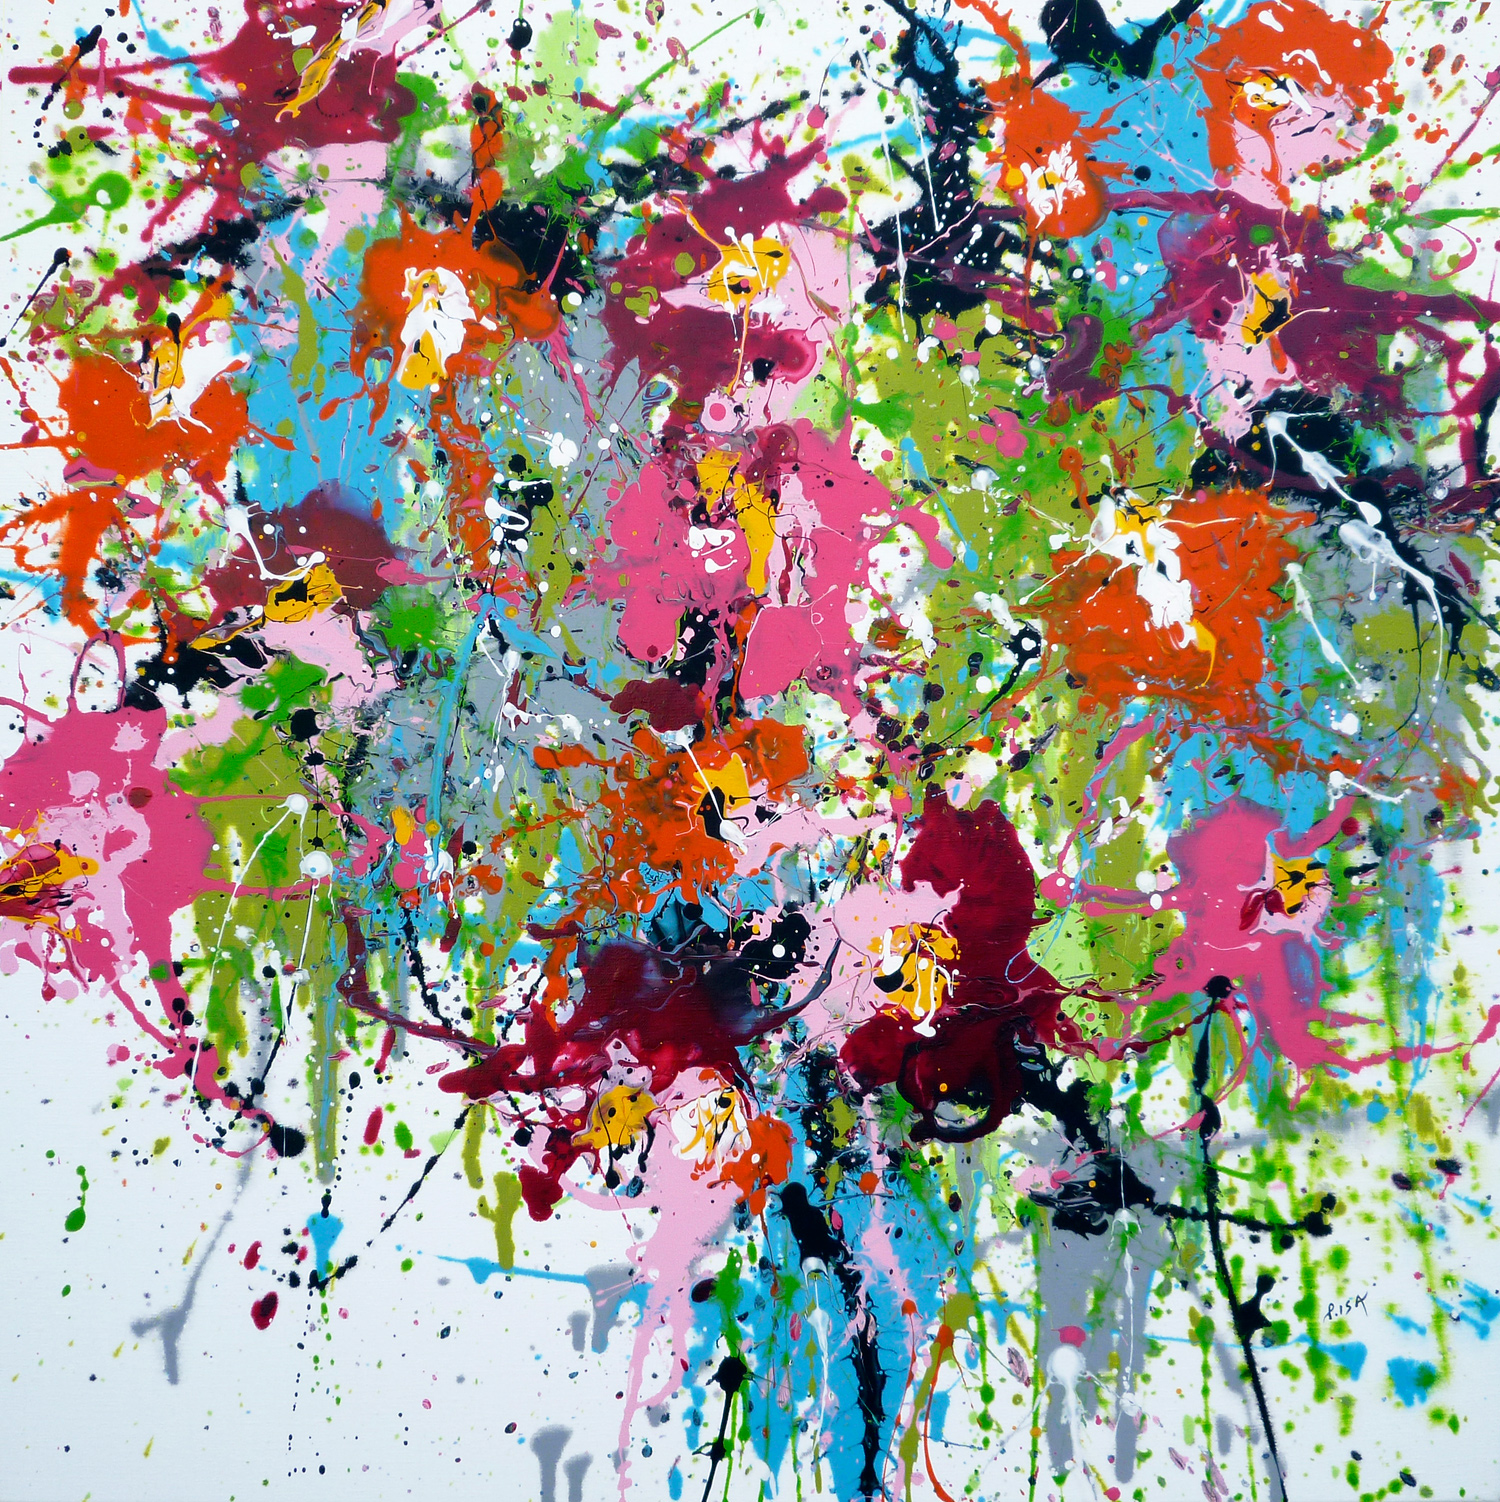 Phytal 80×80 cm – SOLD